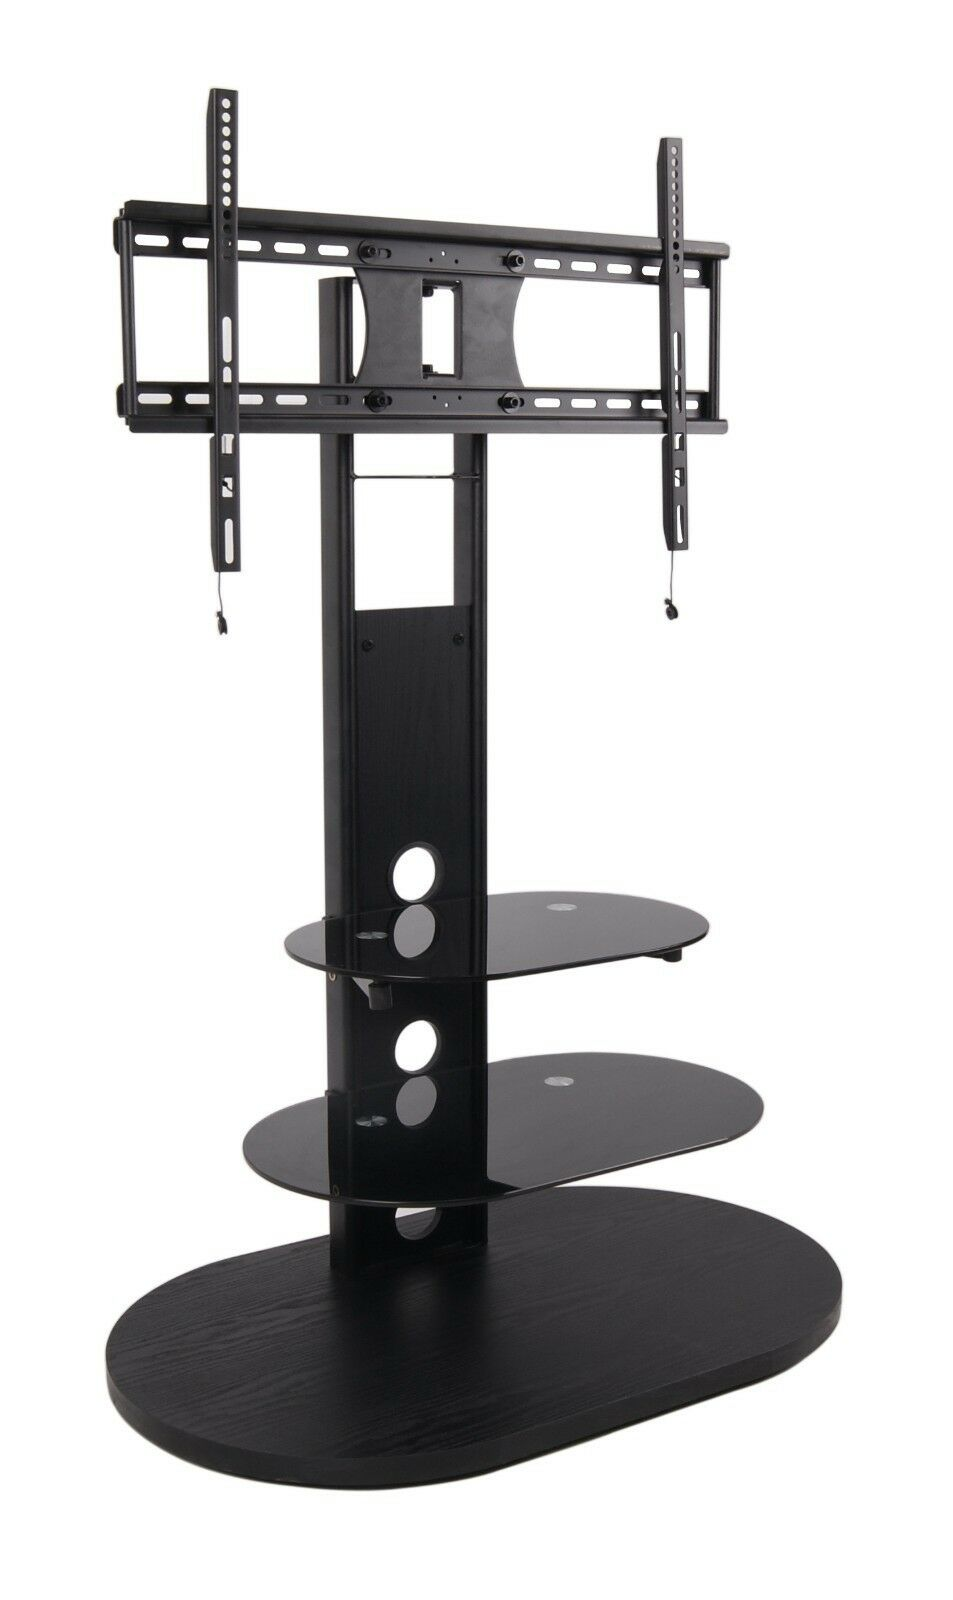 50 52 55 65Inch Flat Panel Screen TV Stand w Mount Black Plasma or LCD